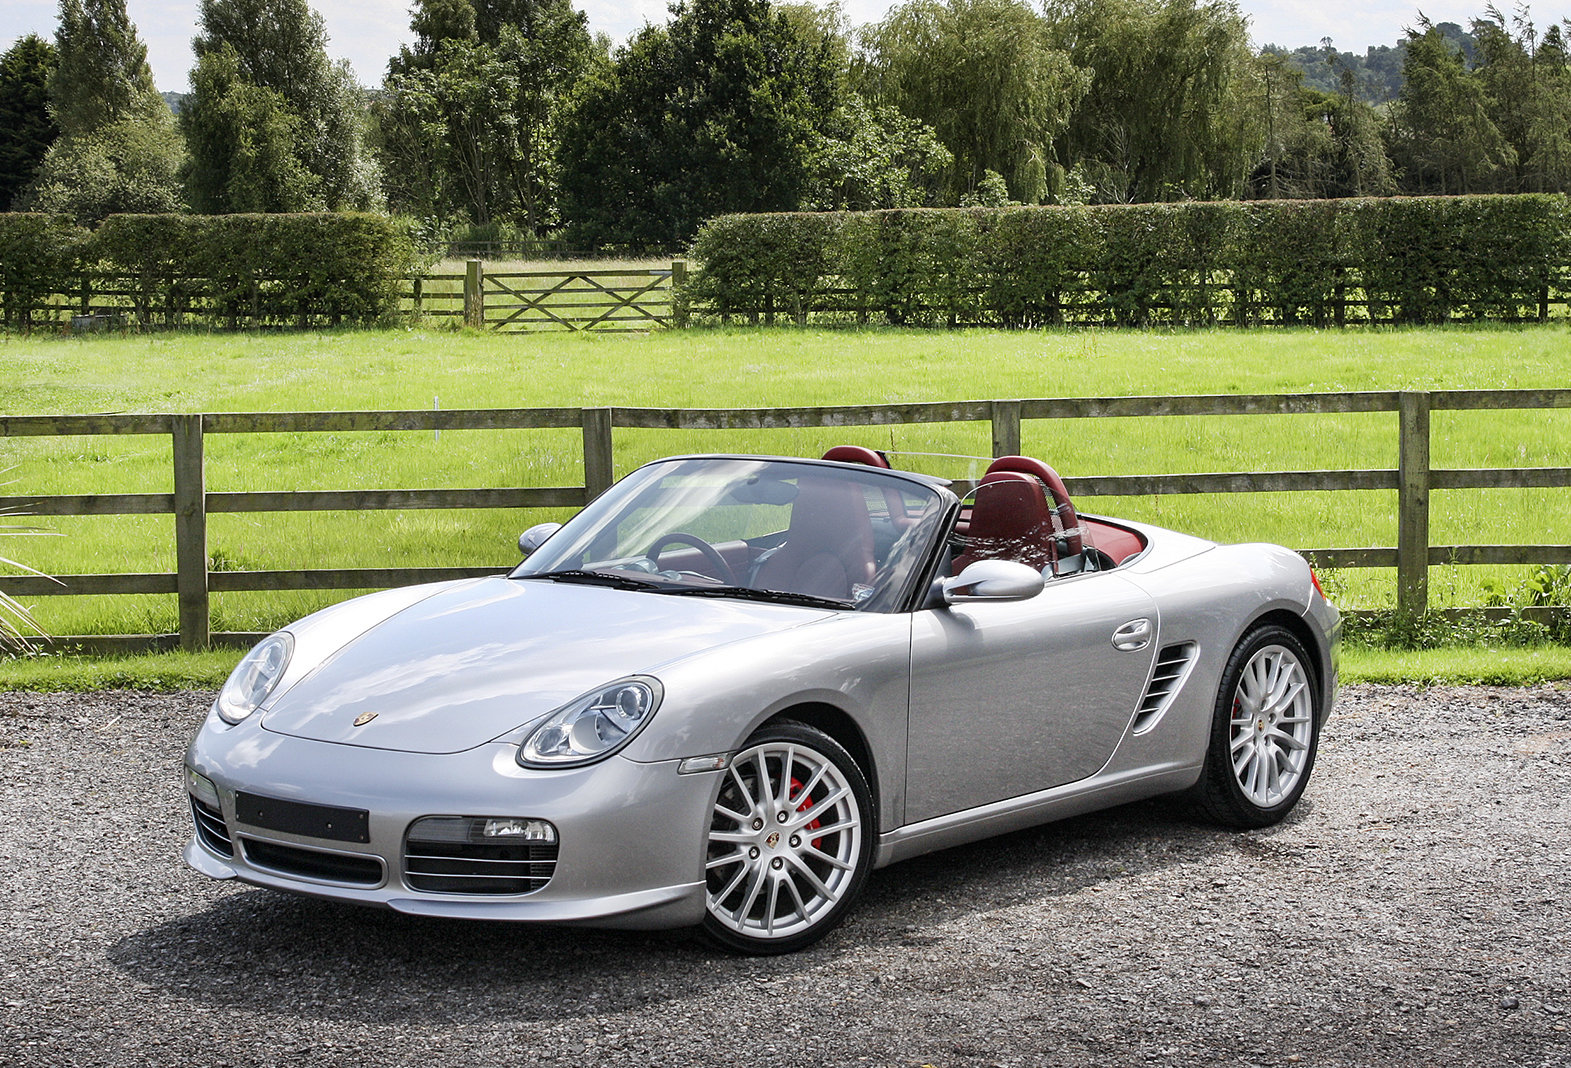 2008 Porsche Boxster RS60 Spyder For Sale (picture 1 of 6)